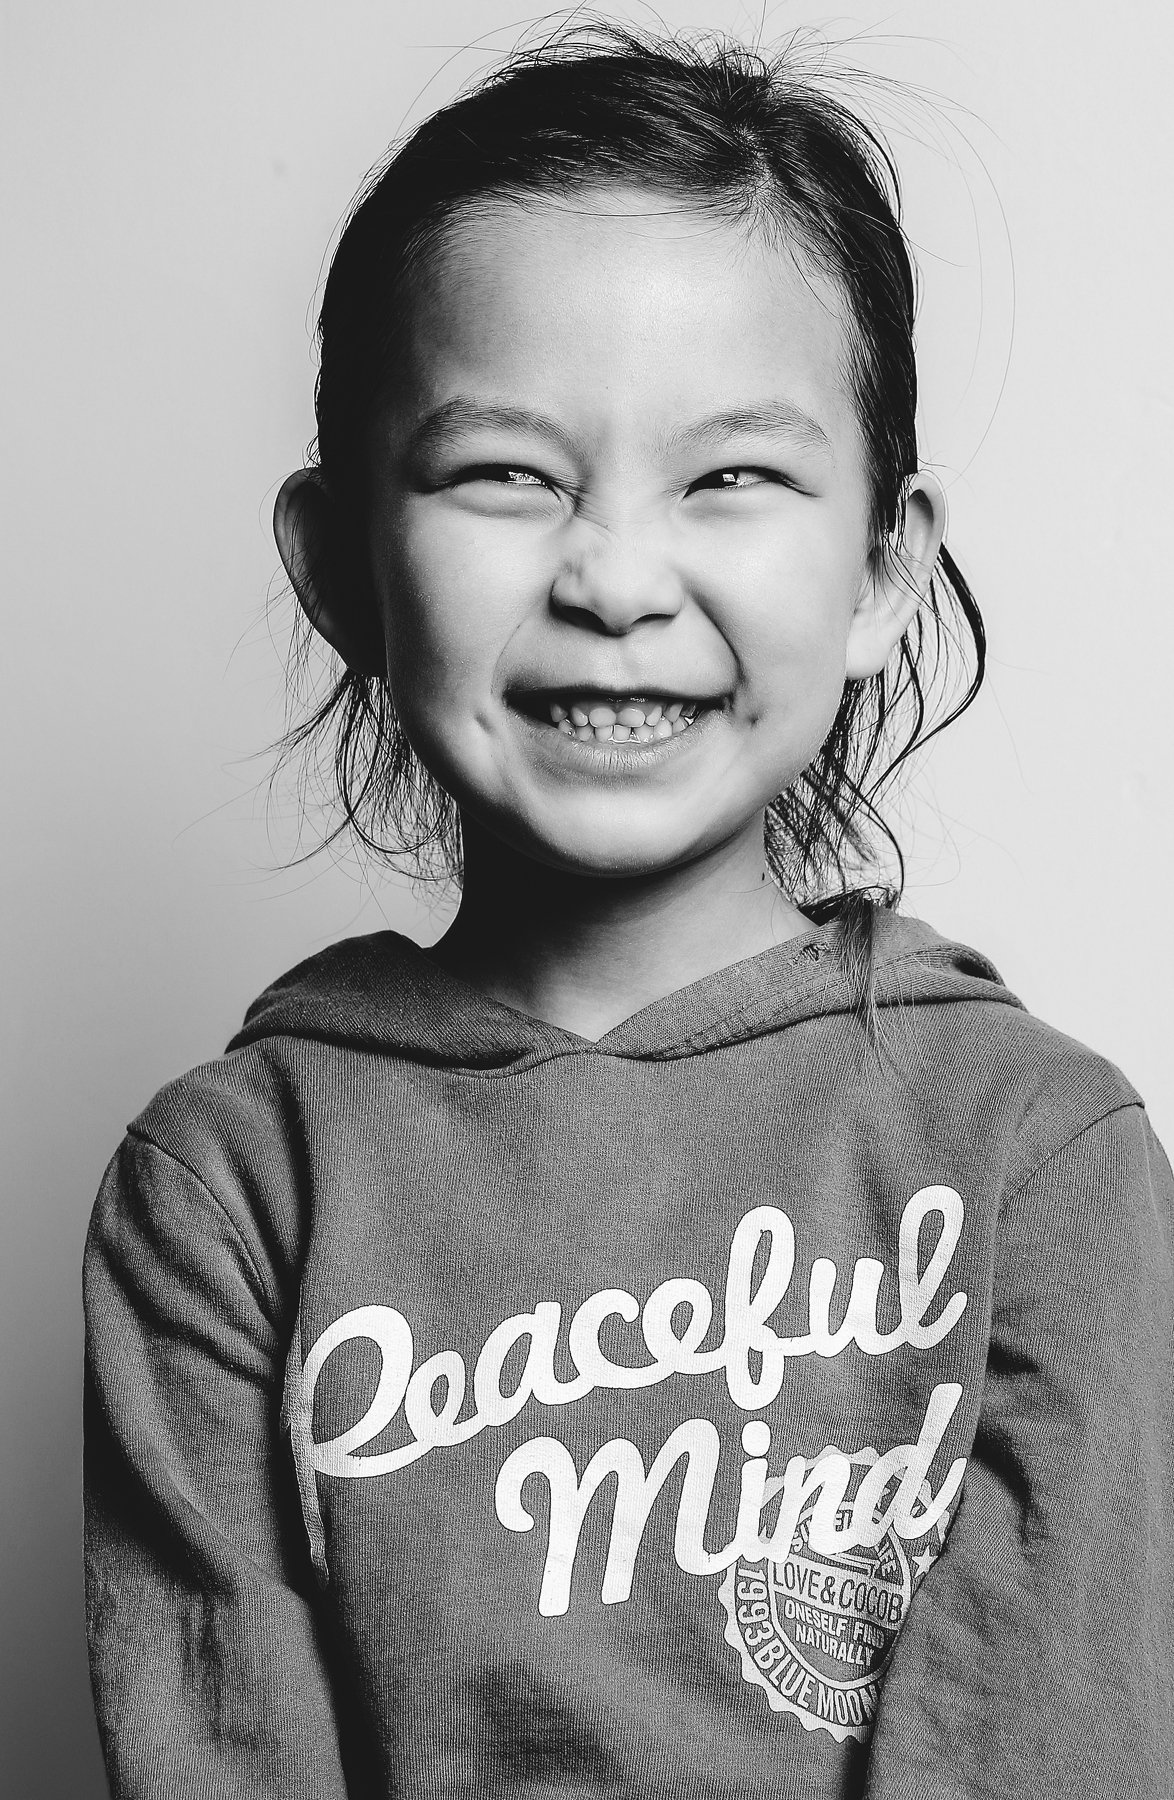 little girl smile, Peaceful, mongolia , Gansukh .S